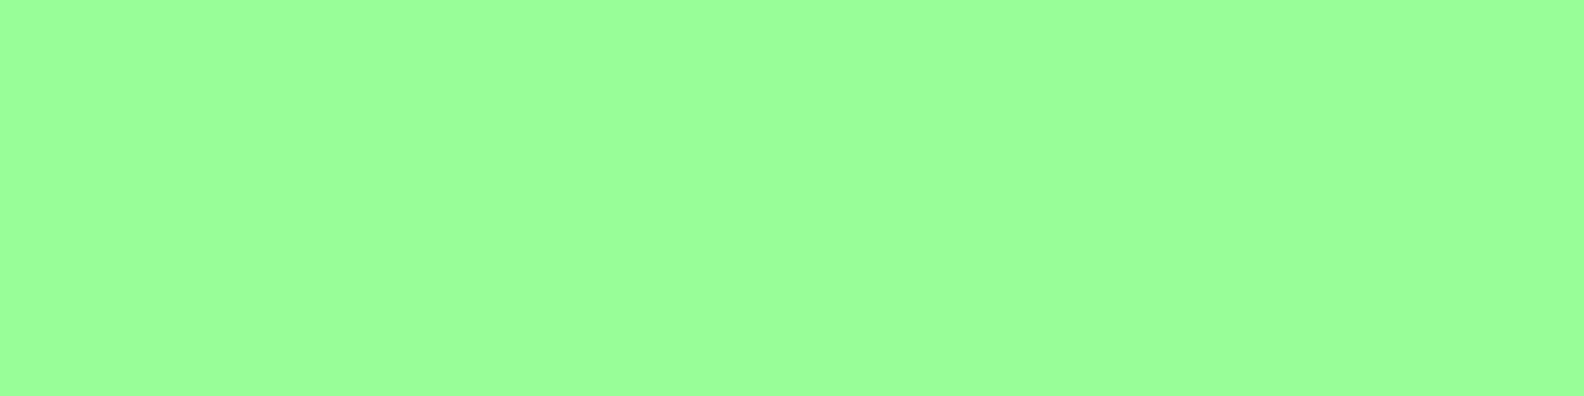 1584x396 Mint Green Solid Color Background